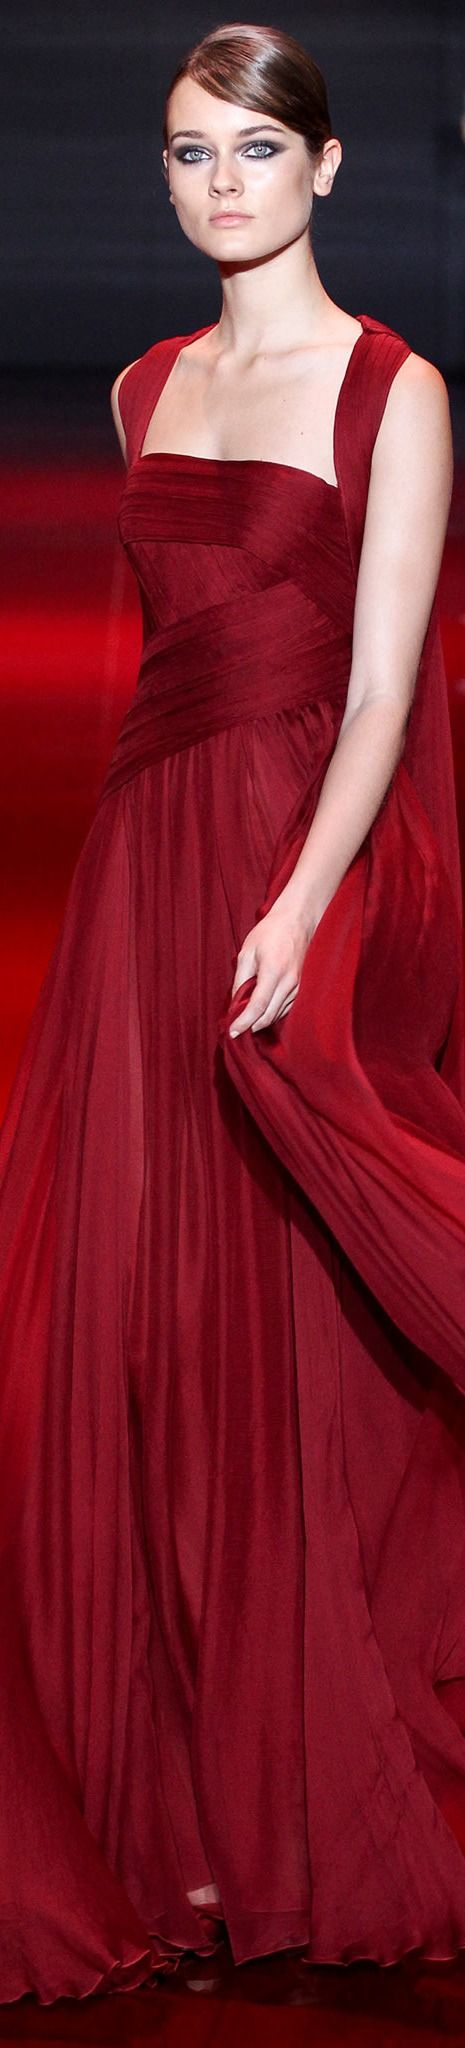 best red images on pinterest rouge bubbles and color schemes